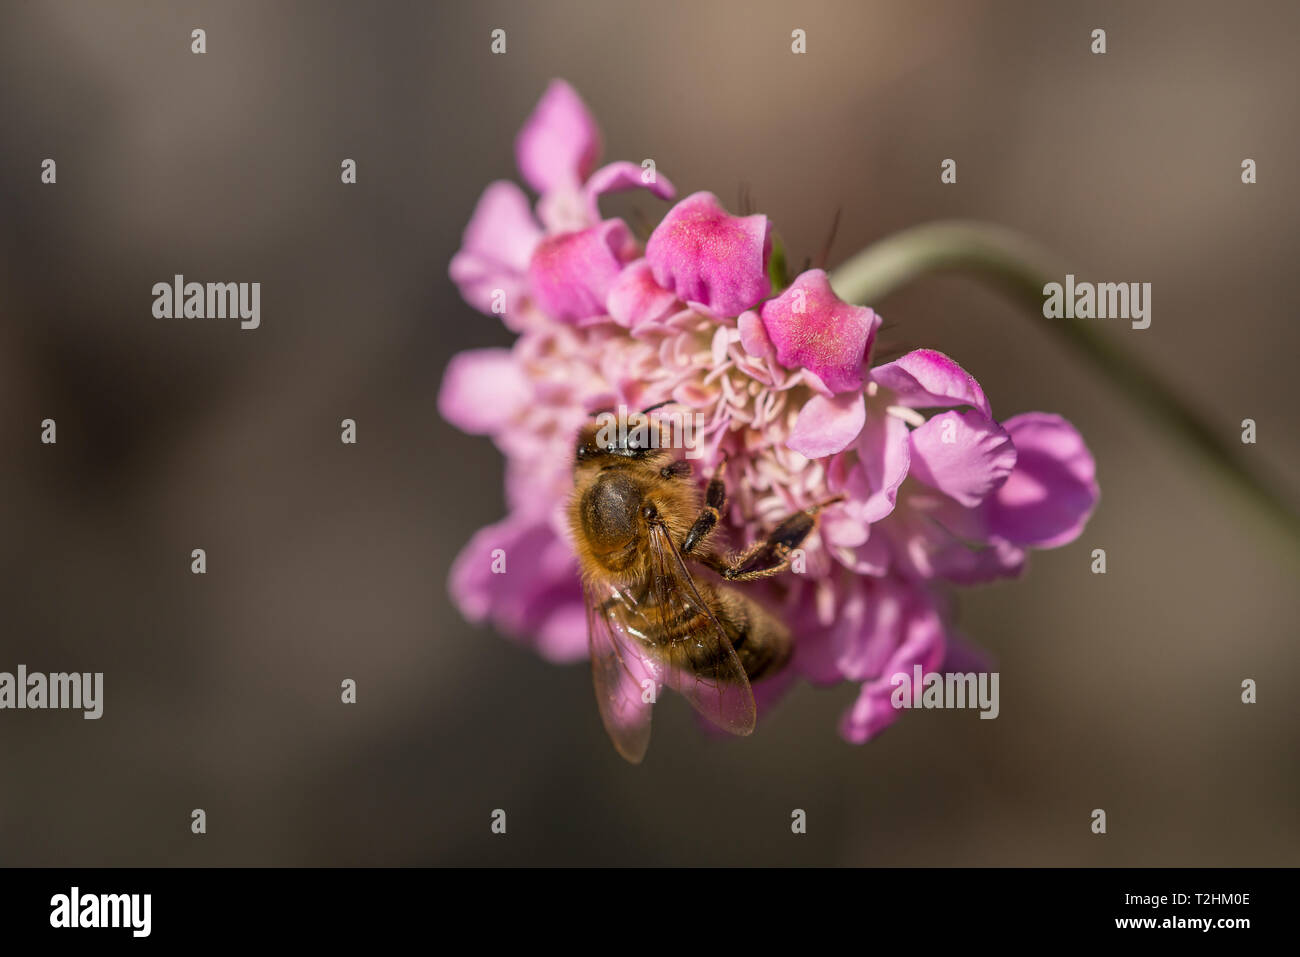 Honey bee on Scabious flower - Stock Image